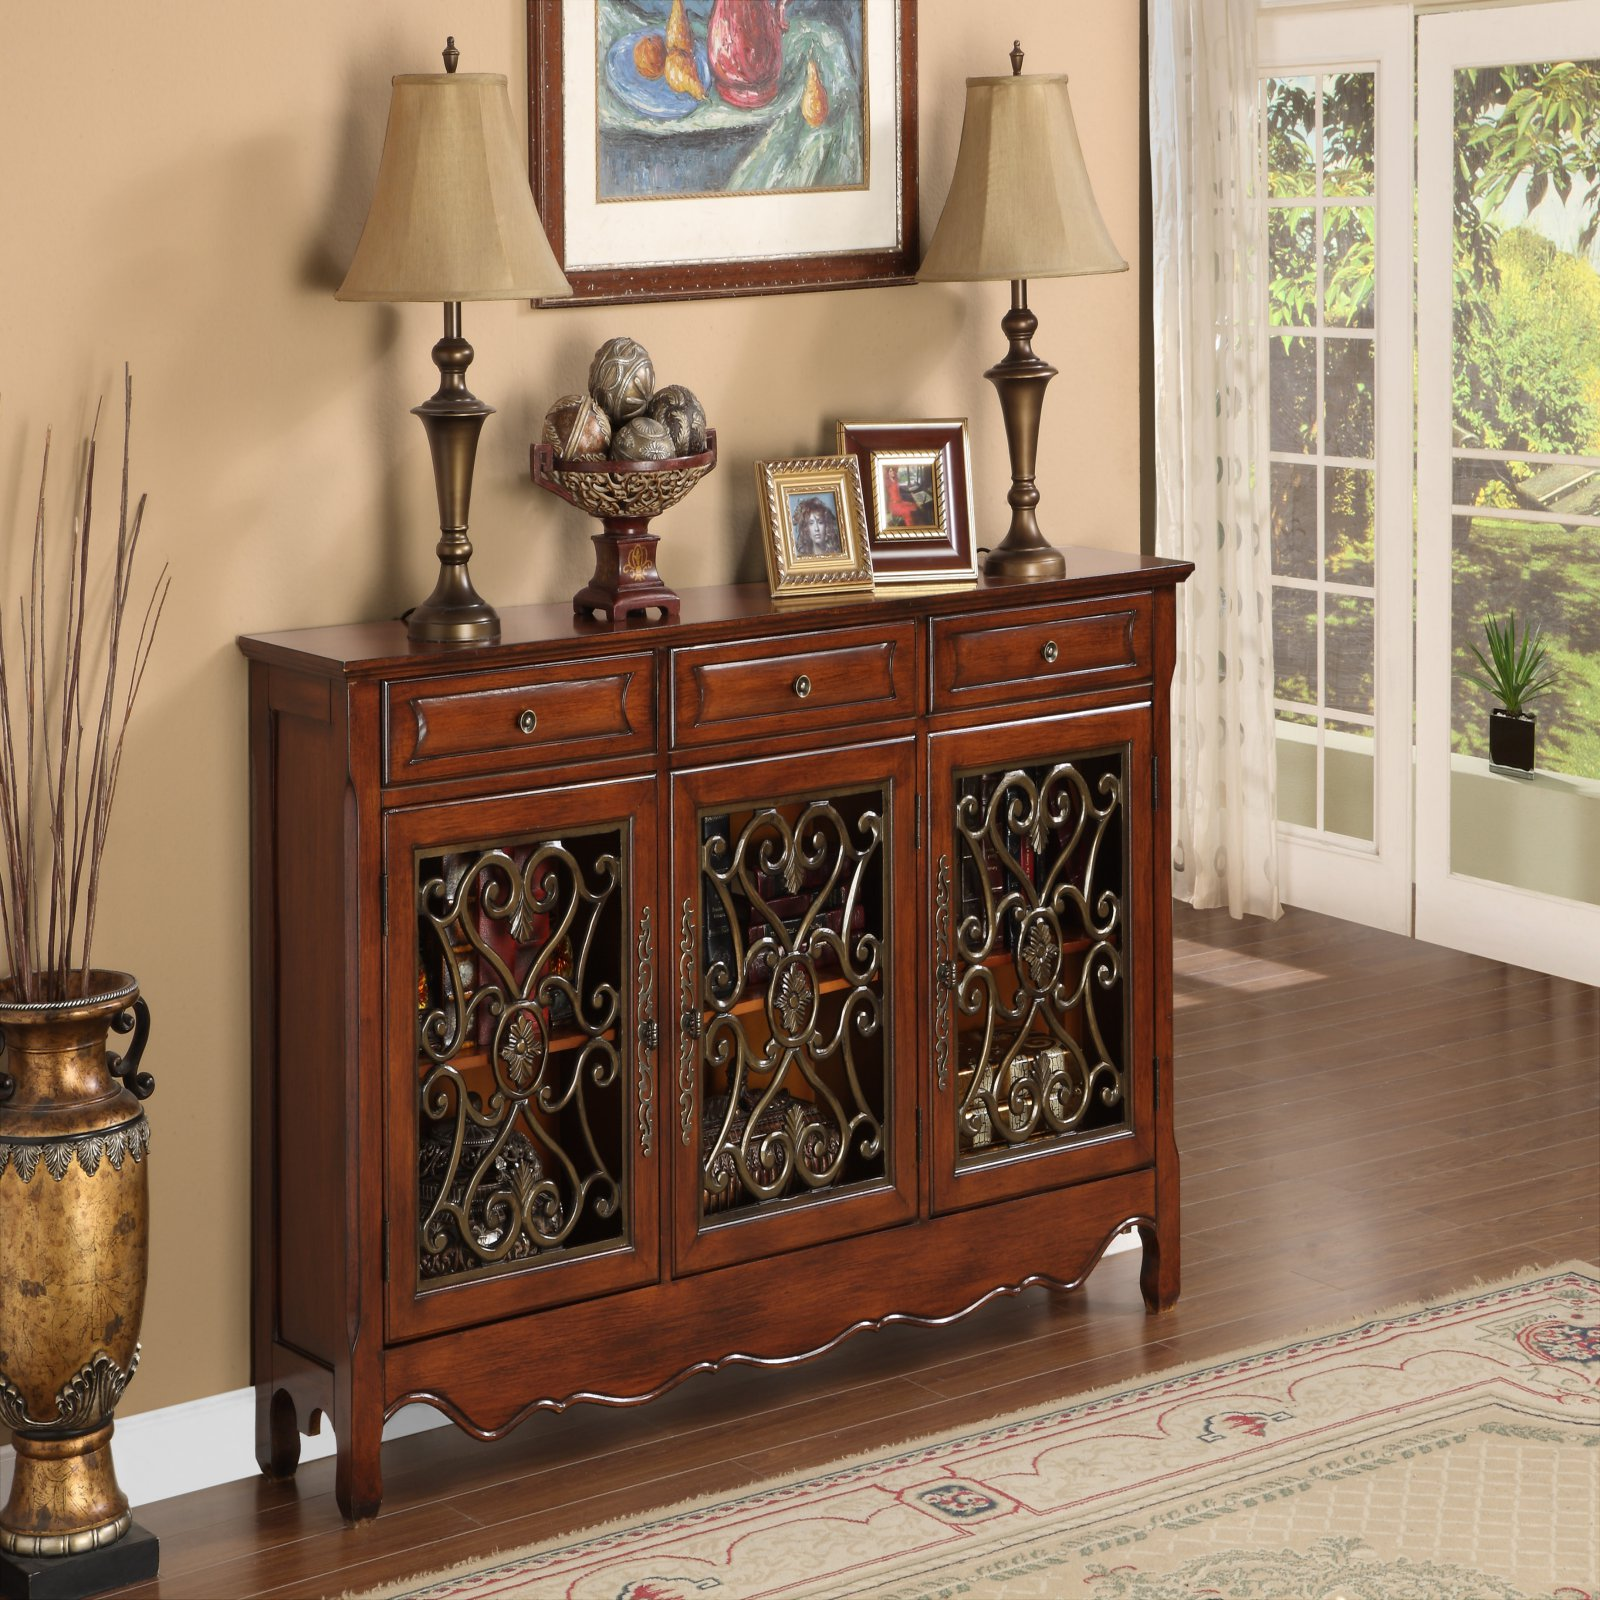 Powell 3 Door Scroll Console Walnut 246-335 by